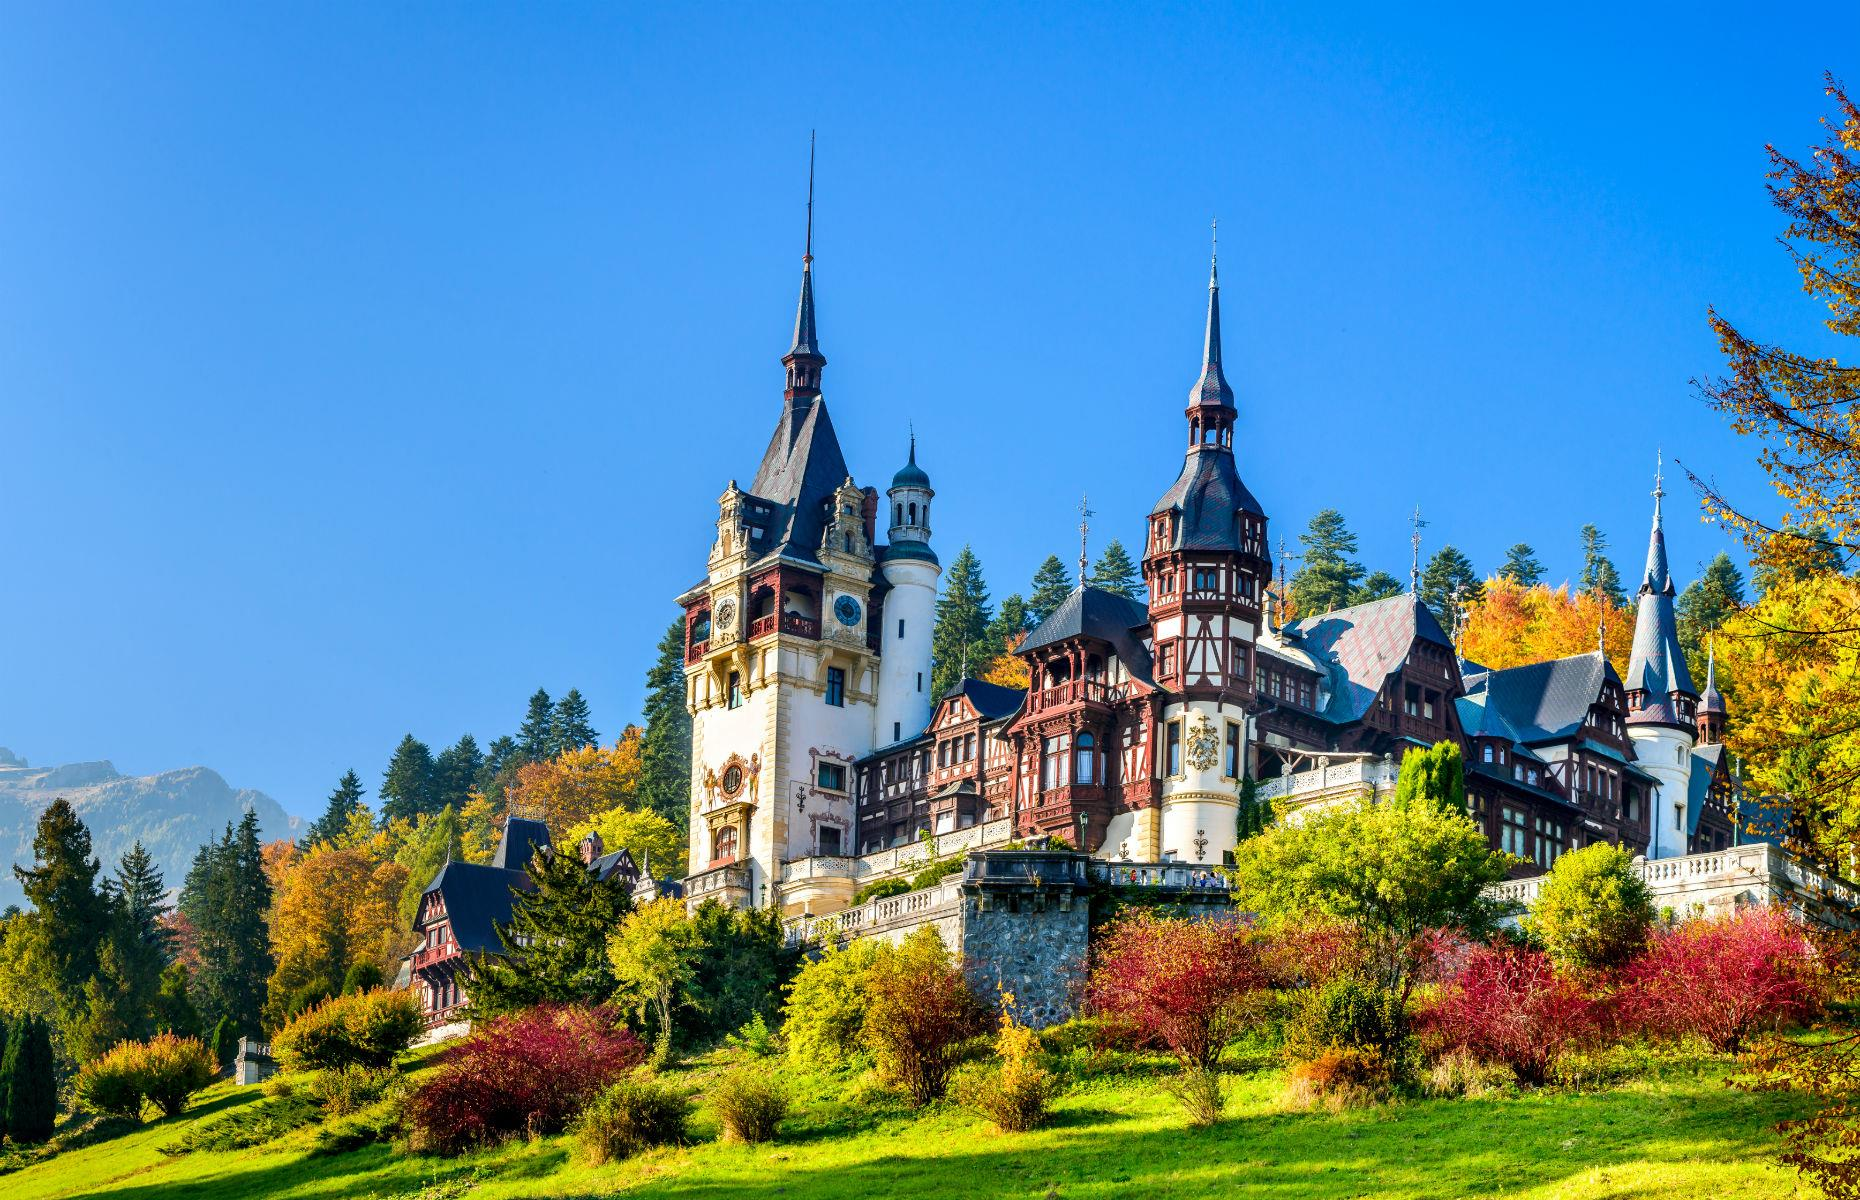 Slide 42 of 61: The picturesque Peleș Castle was constructed in the 19th century for Romanian King Carol I, who fell in love with the Carpathian Mountains and decided to build a summer retreat here. It's not a modest affair, either: the pile in Sinaia, central Romania is a striking mix of Neo-Renaissance and Gothic Revival architecture.